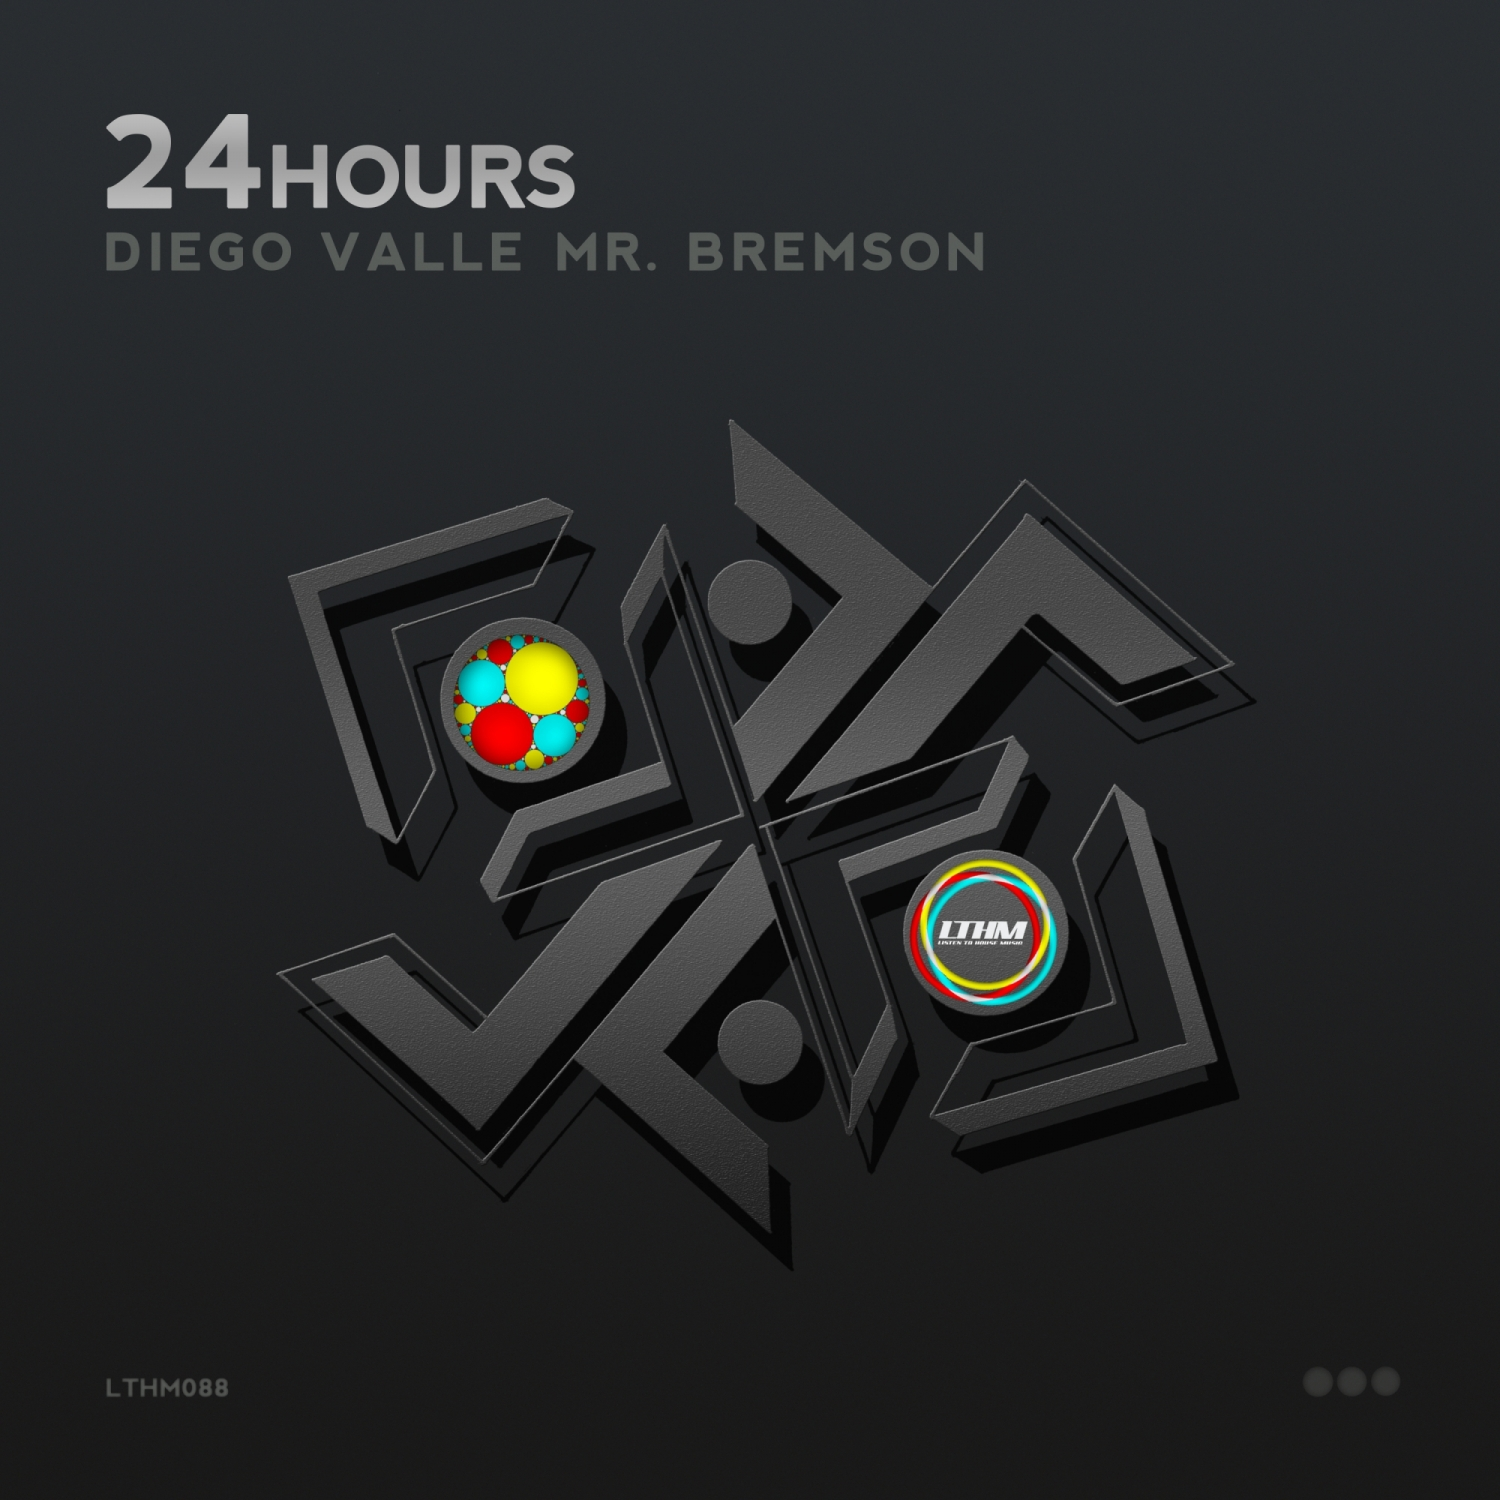 Diego Valle & Mr. Bremson - 24 Hours (Original Mix)